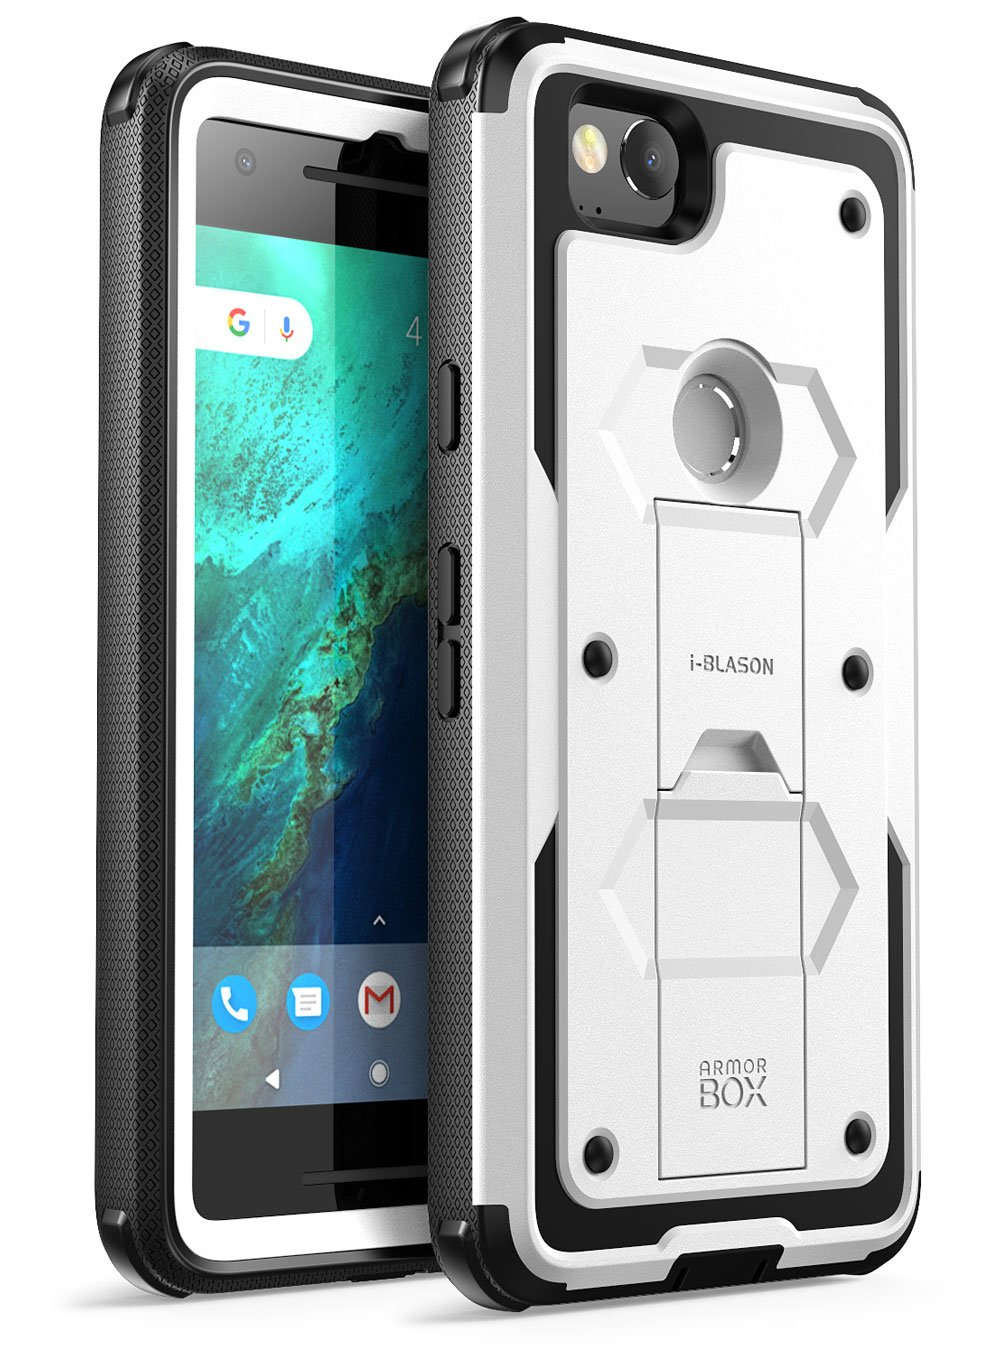 Google Pixel 2 Case, [Armorbox] i-Blason Built in [Screen Protector] [Full Body] [Heavy Duty Protection ] [Kickstand] Shock Reduction/Bumper Case for Google Pixel 2 2017 Release (White)